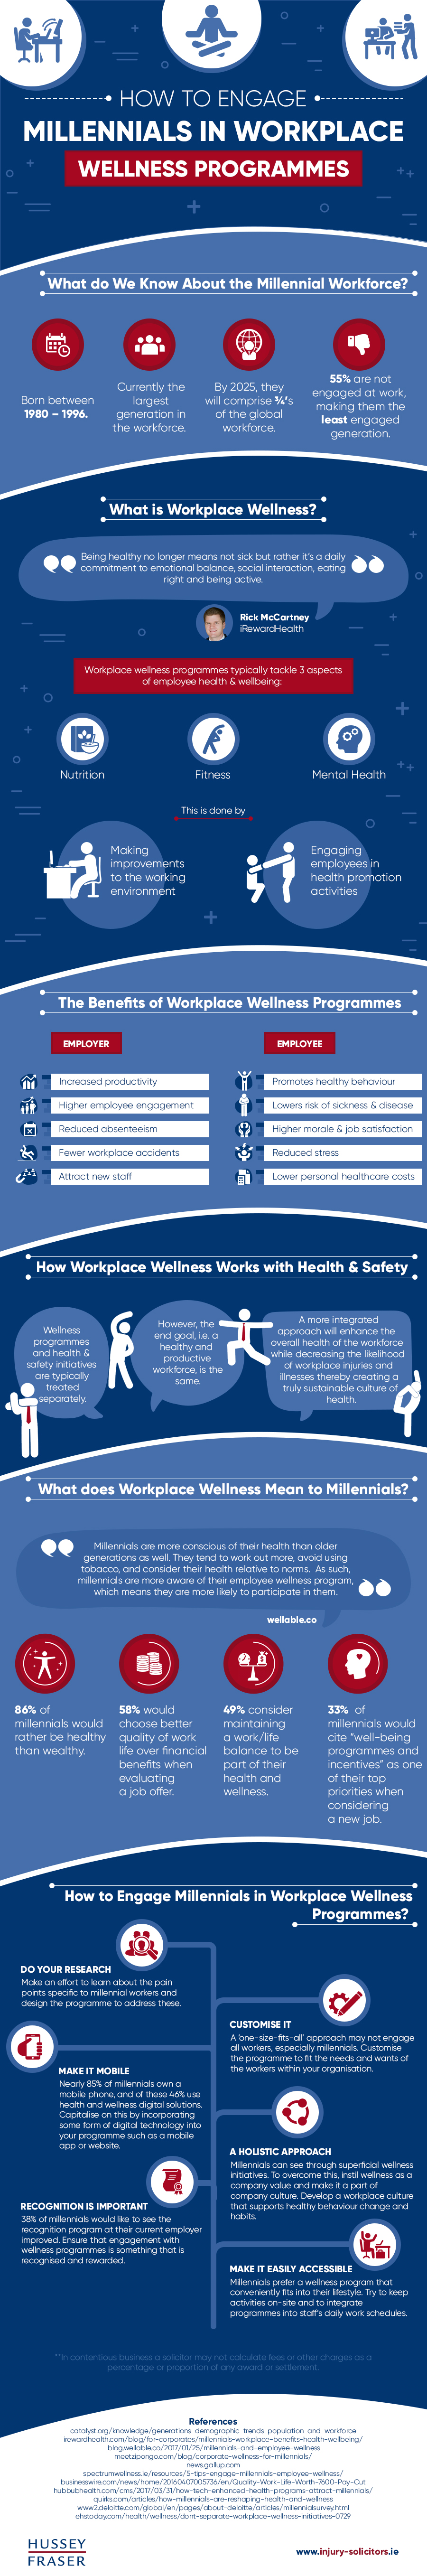 how to engage millenials in workplace wellness programmes